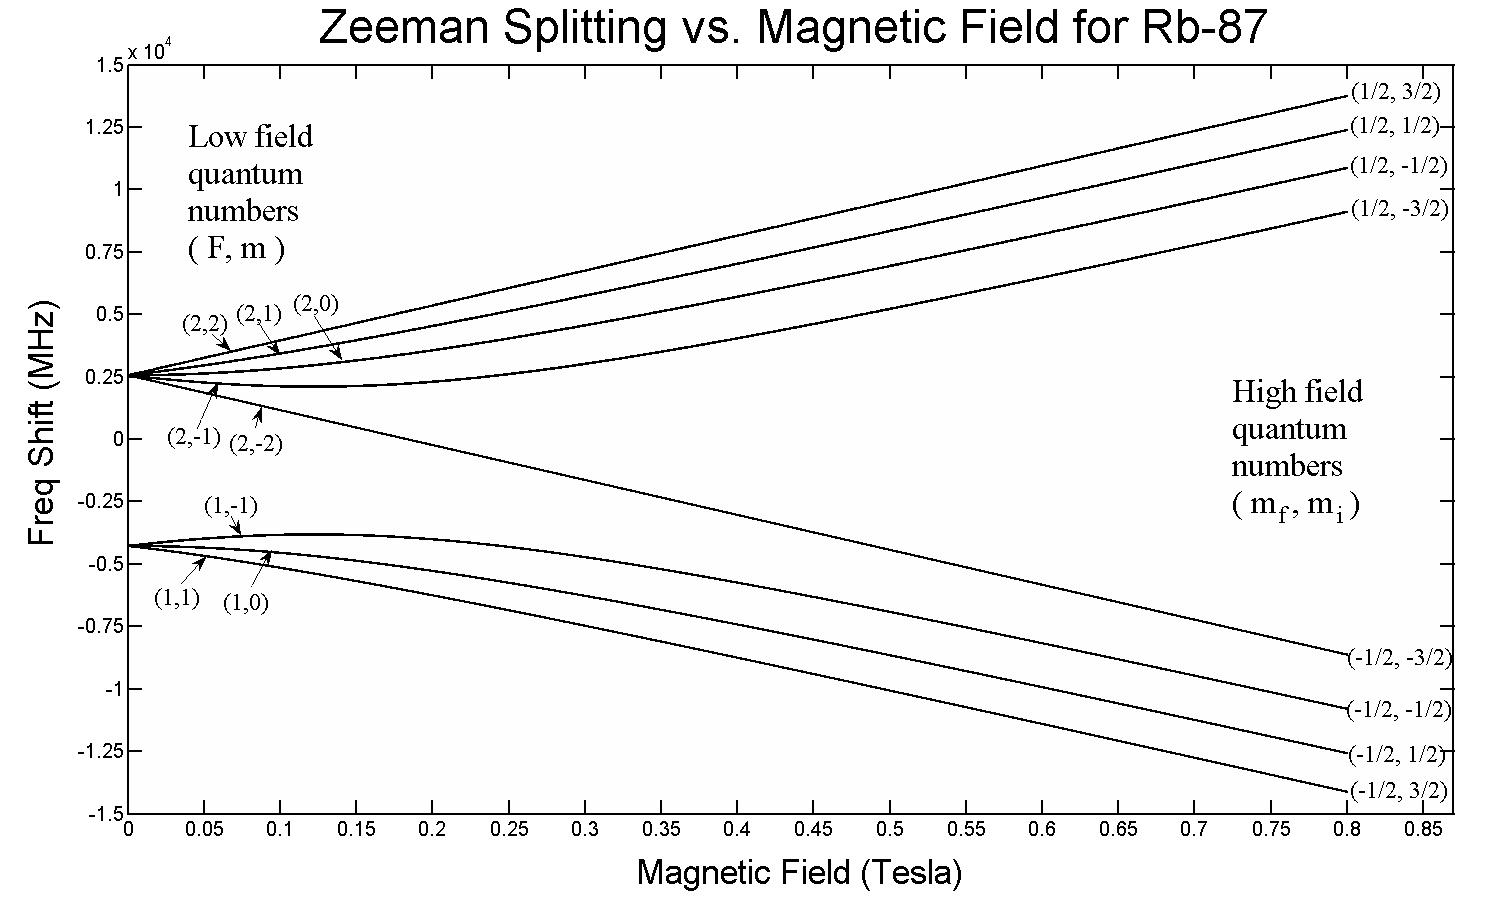 Module 3 Lesson 5 Fig.6(1) Zeeman Splitting against Magnetic Field